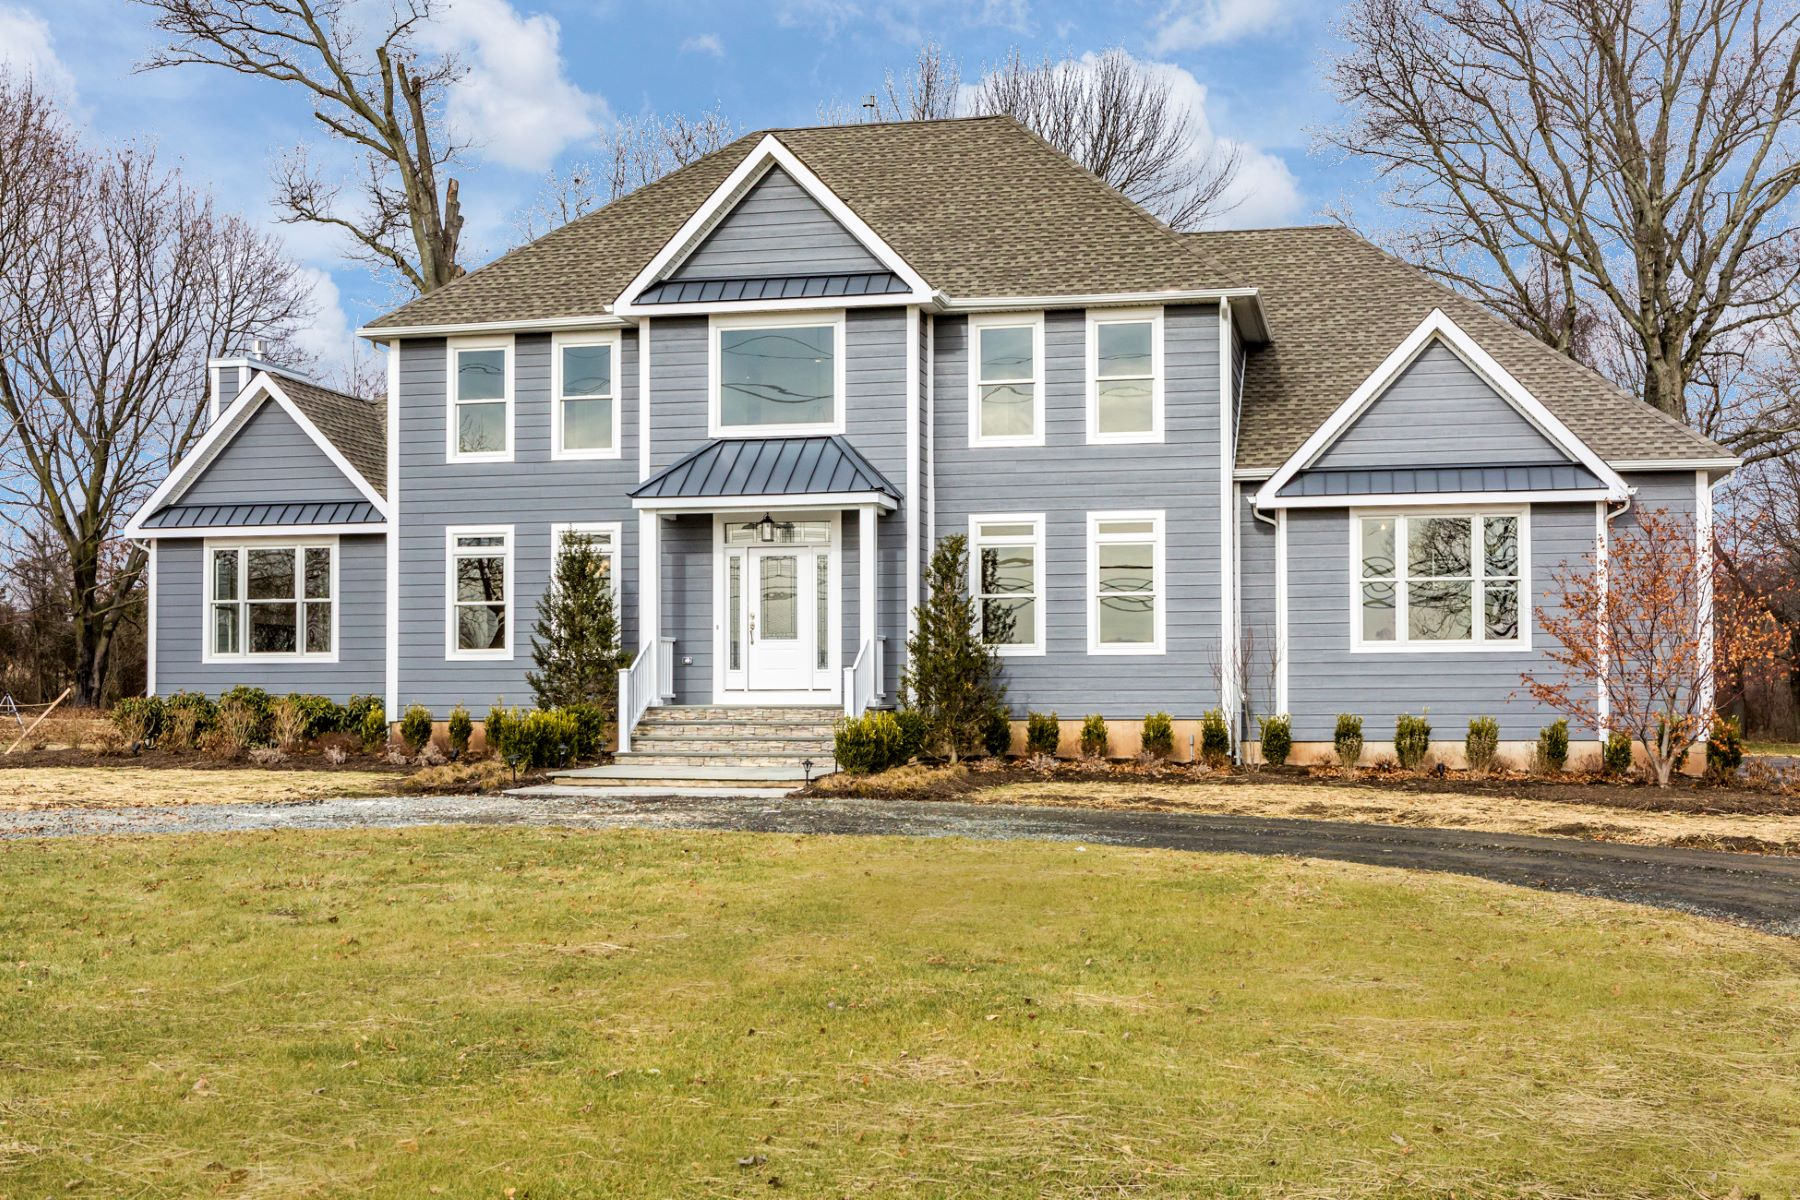 Single Family Home for Sale at Elegant Addition to a Stretch of Fine Properties 9 Elm Ridge Road Pennington, New Jersey 08534 United StatesIn/Around: Hopewell Township